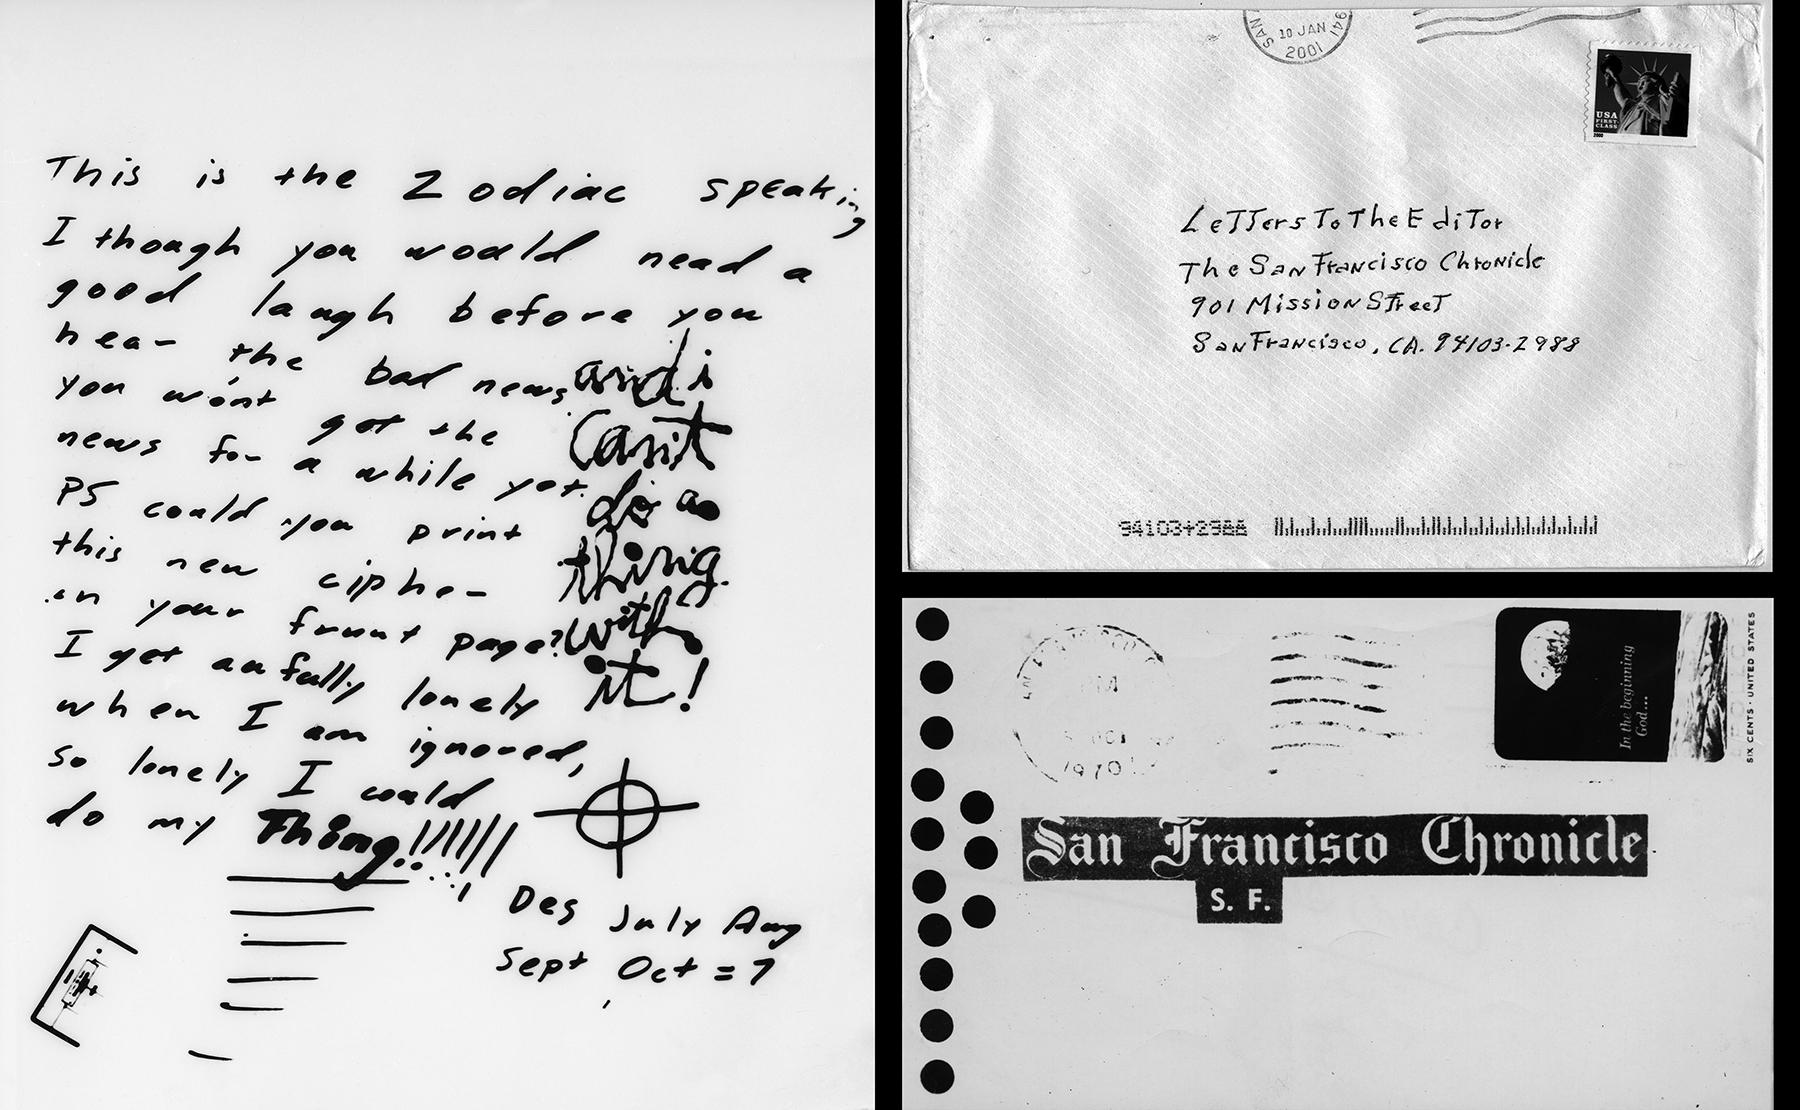 Zodiac killer code cracked? The SF Chronicle gets tips like this almost every day - San Francisco Chronicle